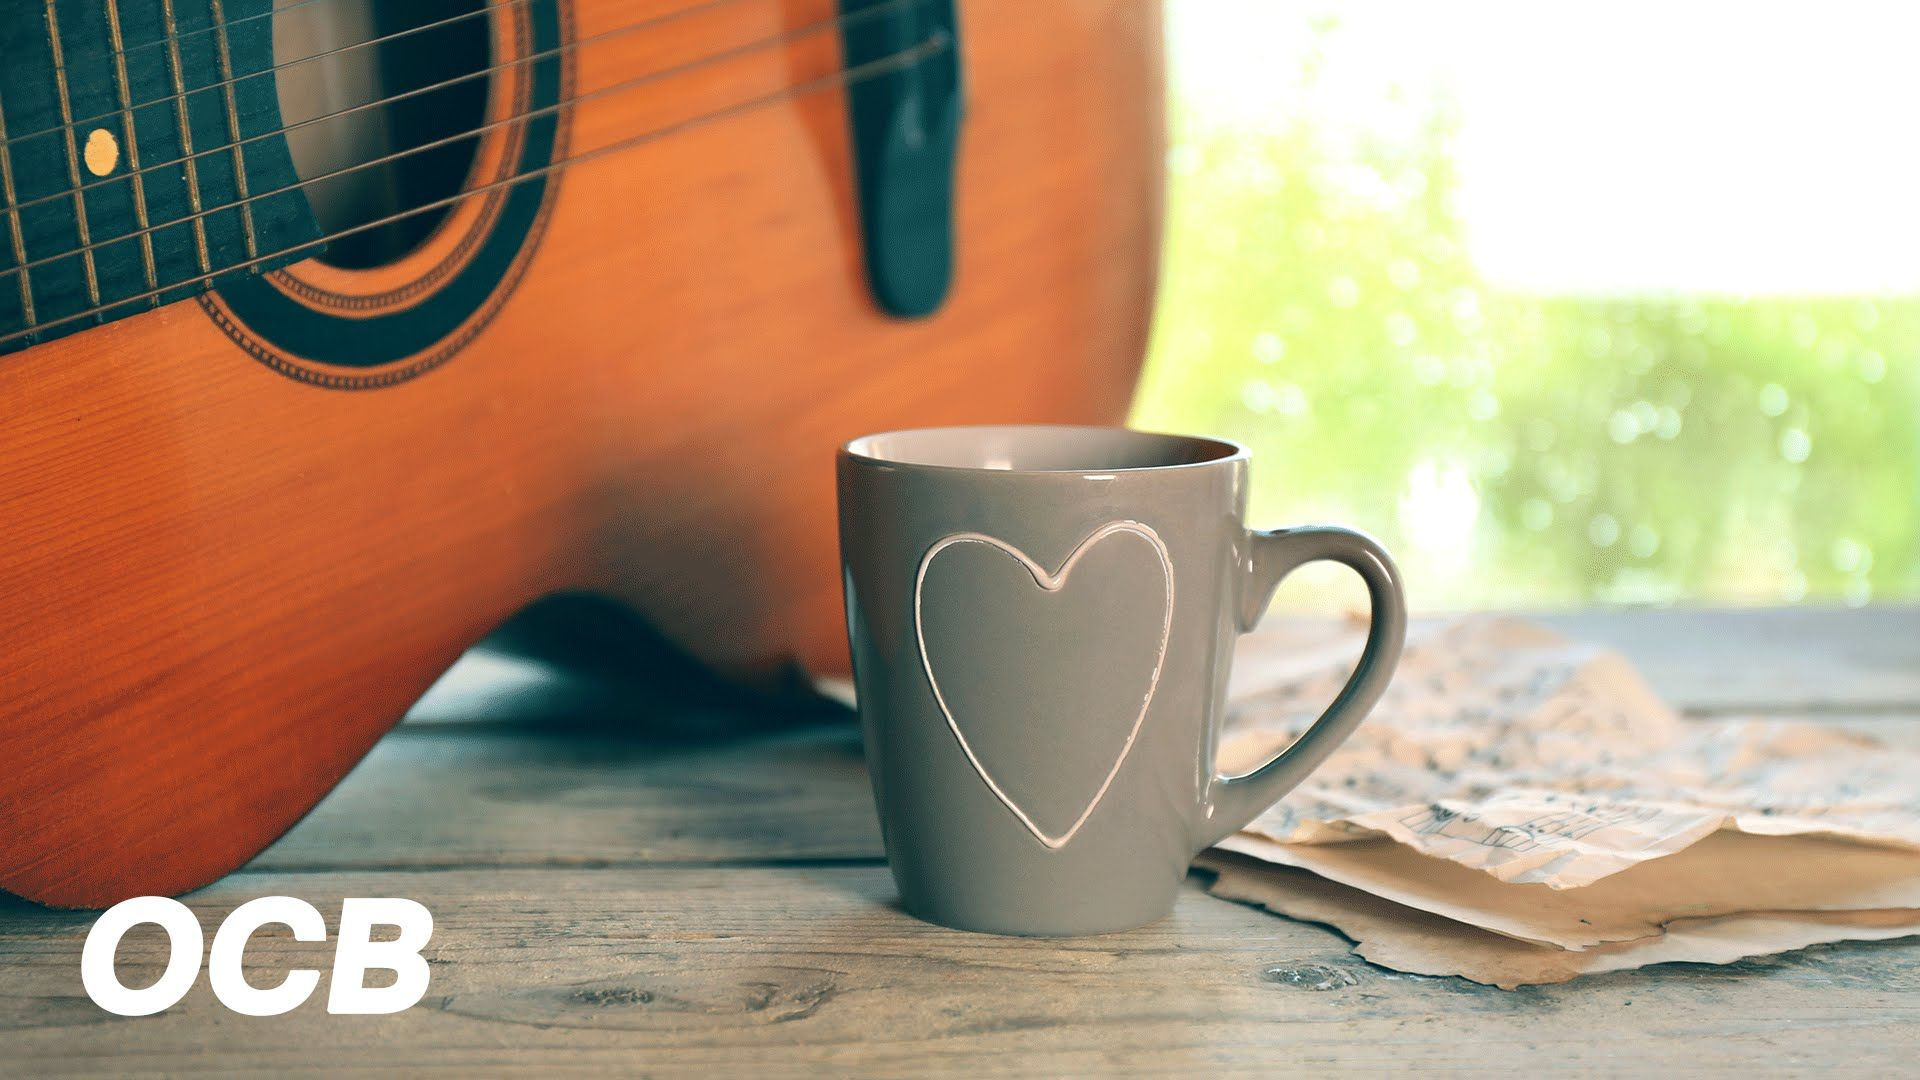 Morning Guitar Instrumental Music to Wake Up Without